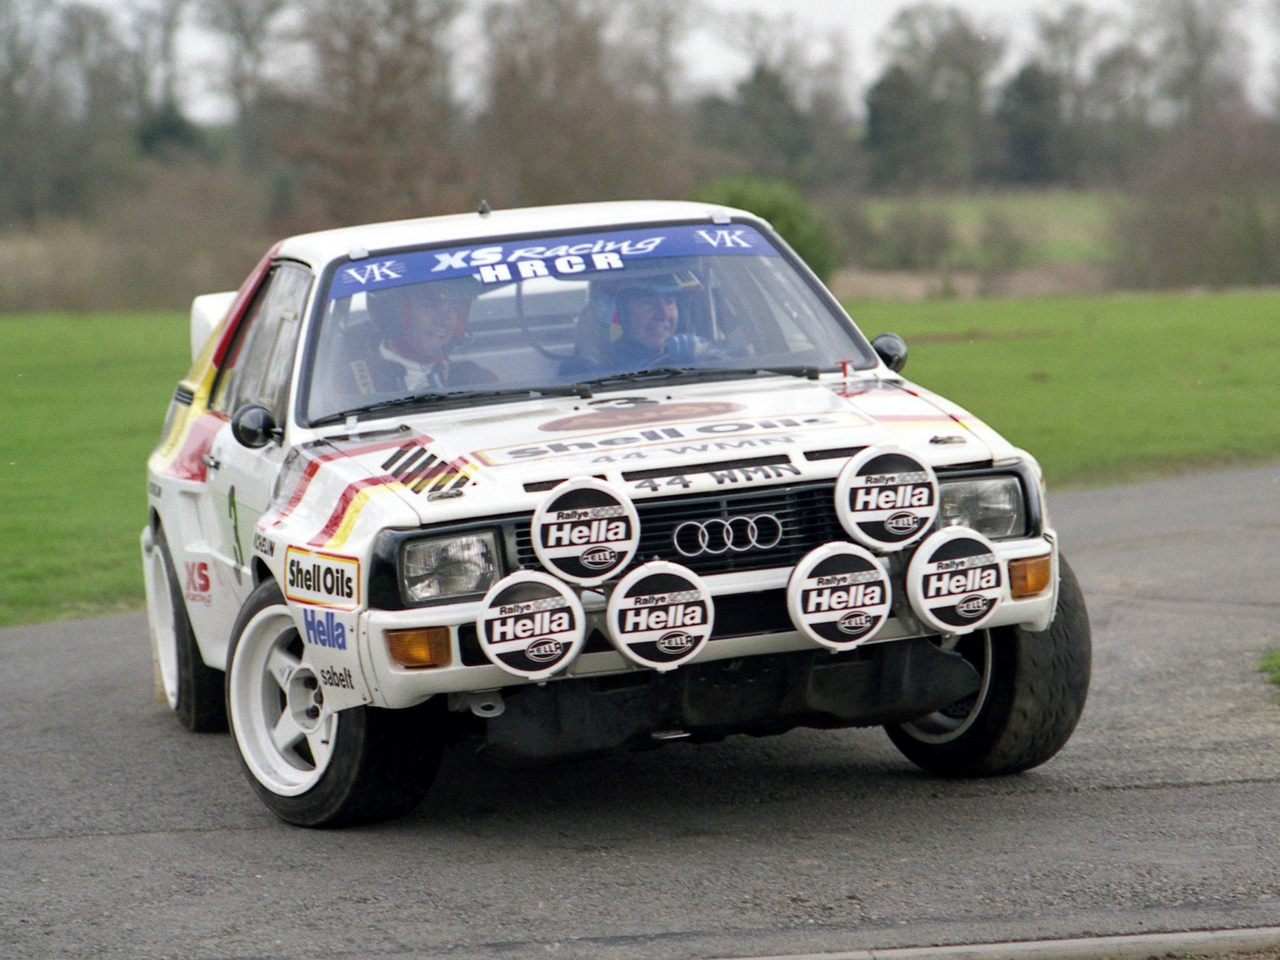 Audi Quattro S1 Rally Car Sport Wallpapers Wallpaper: [49+] Group B Rally Wallpaper On WallpaperSafari